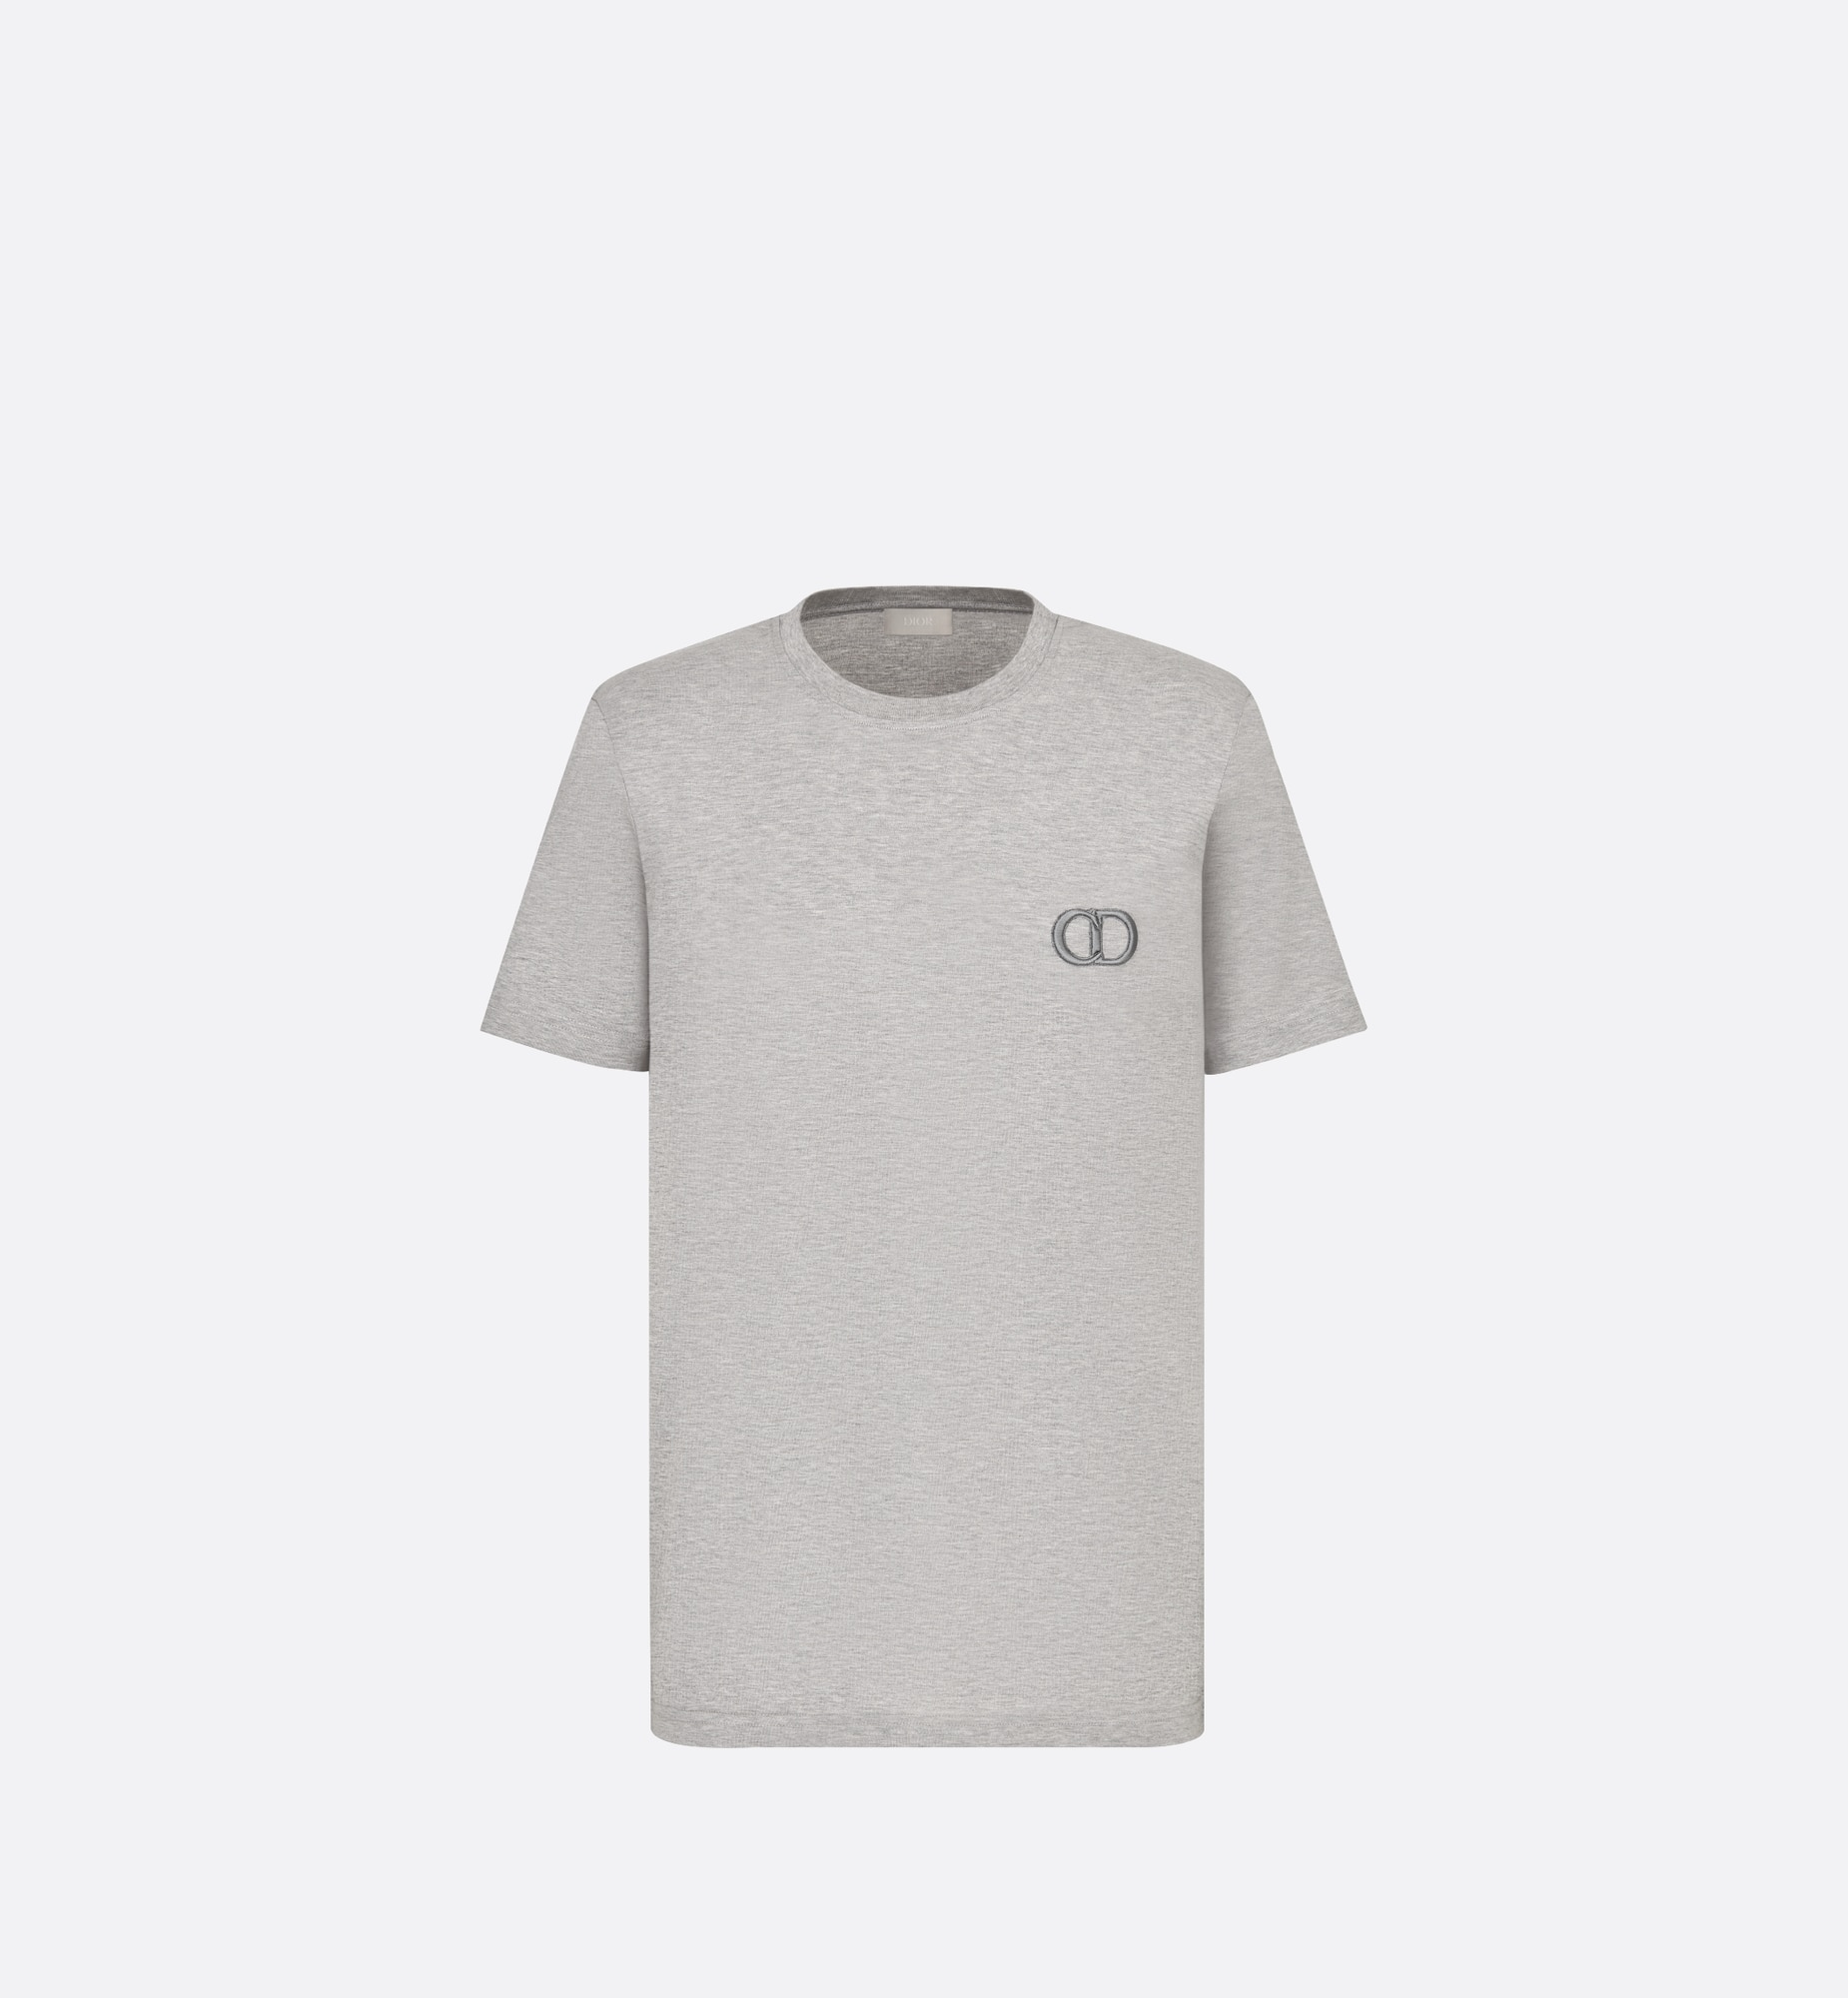 'CD Icon' T-Shirt Front view